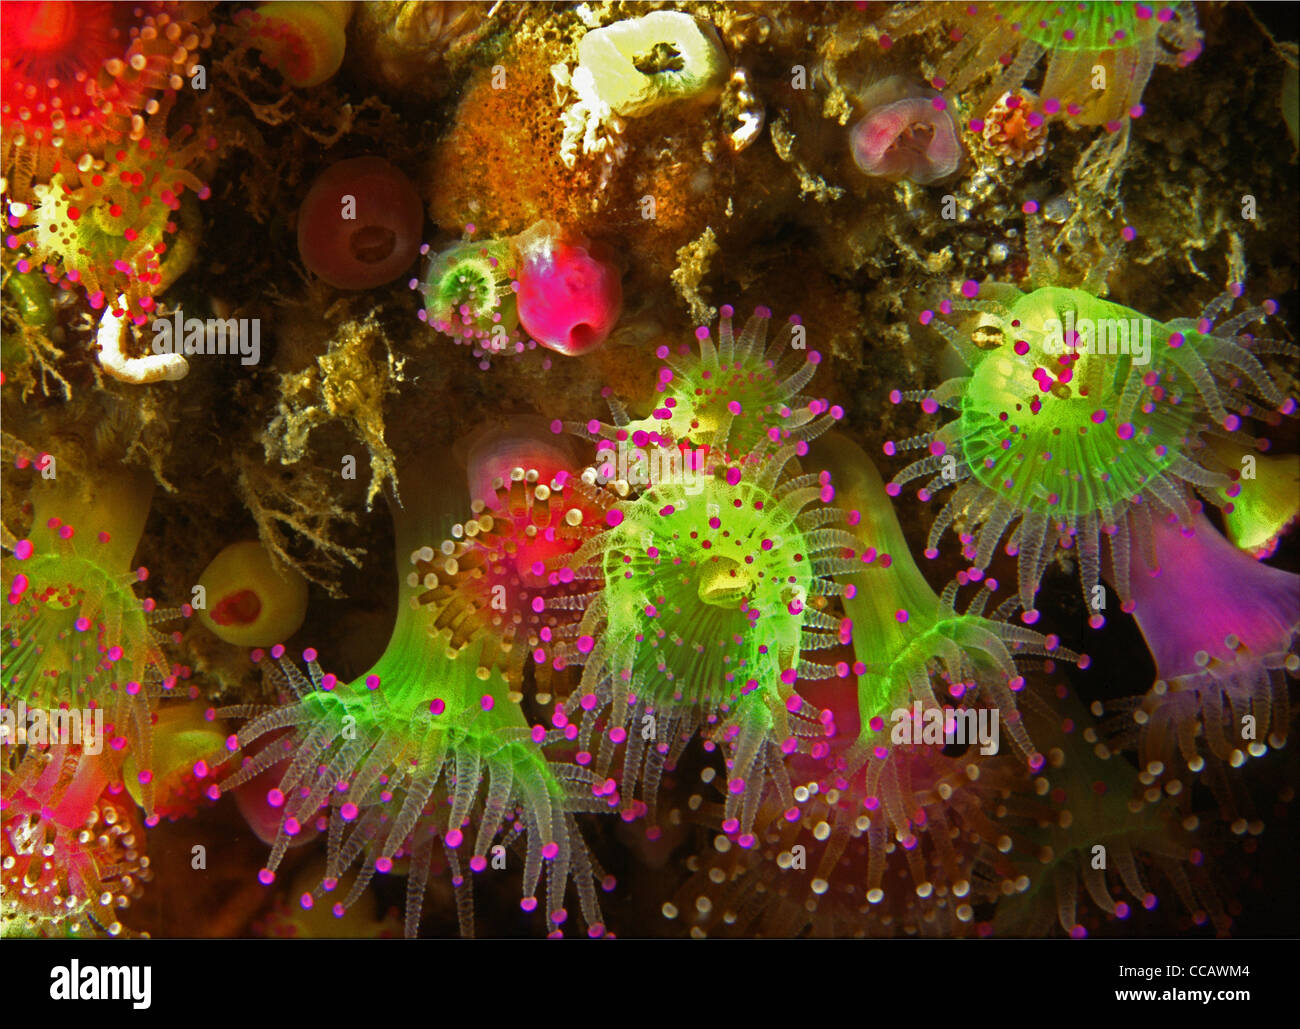 A wall of jewel anemones, Corynactis viridis, on the Eddystone Reef, 12 miles out from Plymouth Sound, Sourhwest - Stock Image